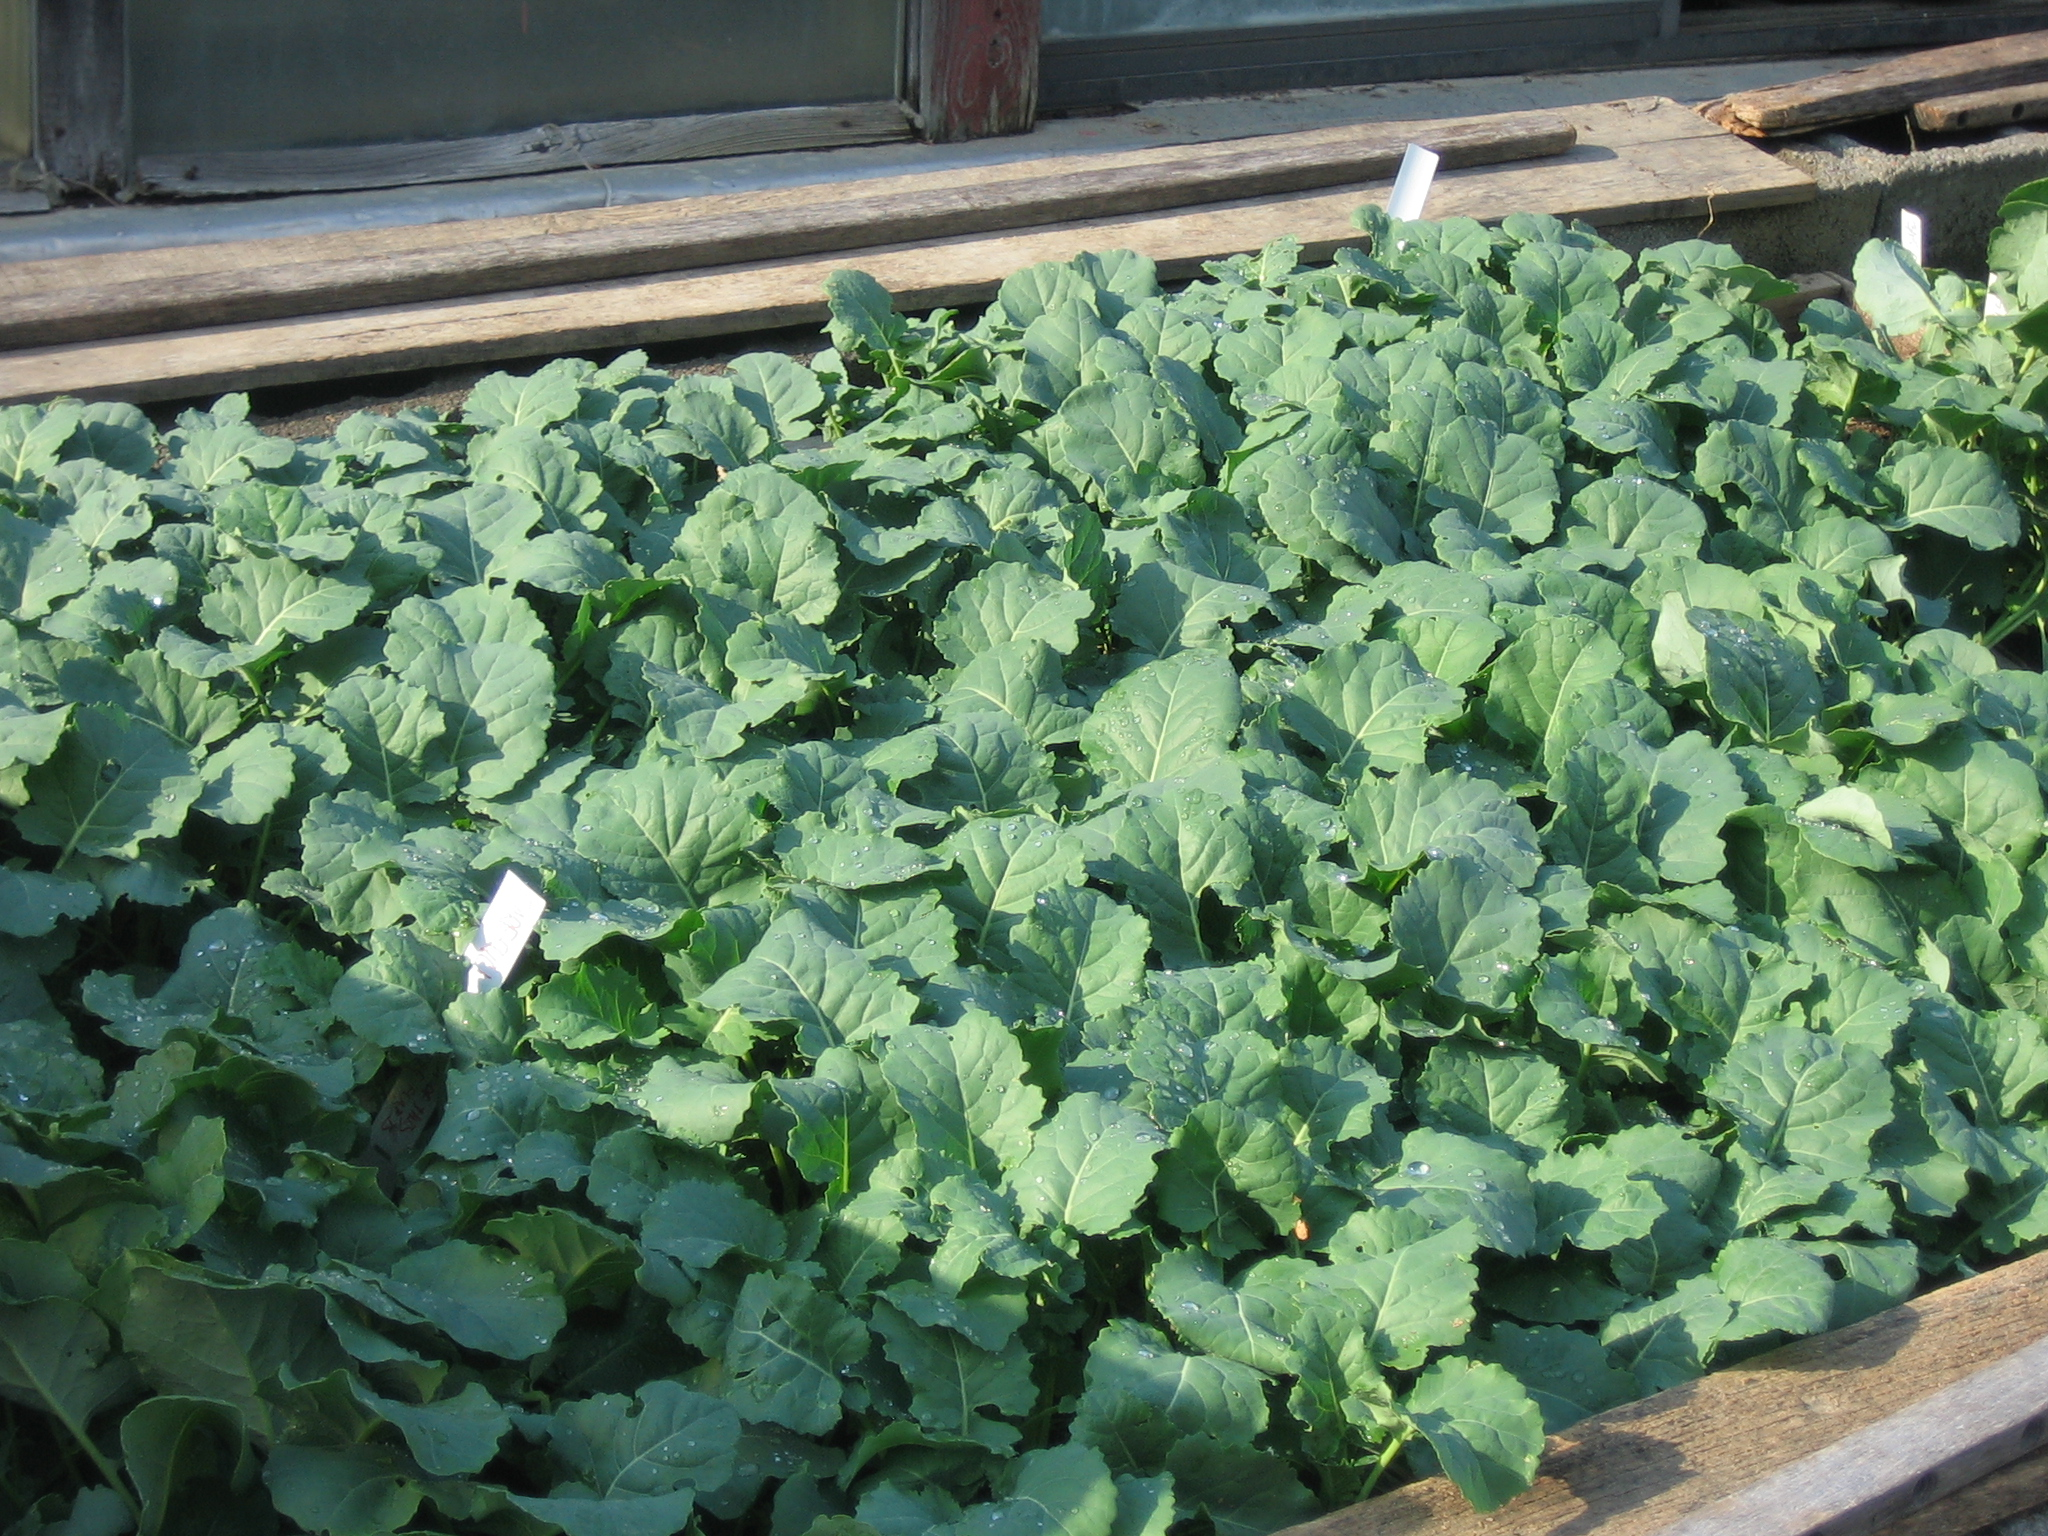 Flats of broccoli seedlings in our cold frame. Photo Kathryn Simmons